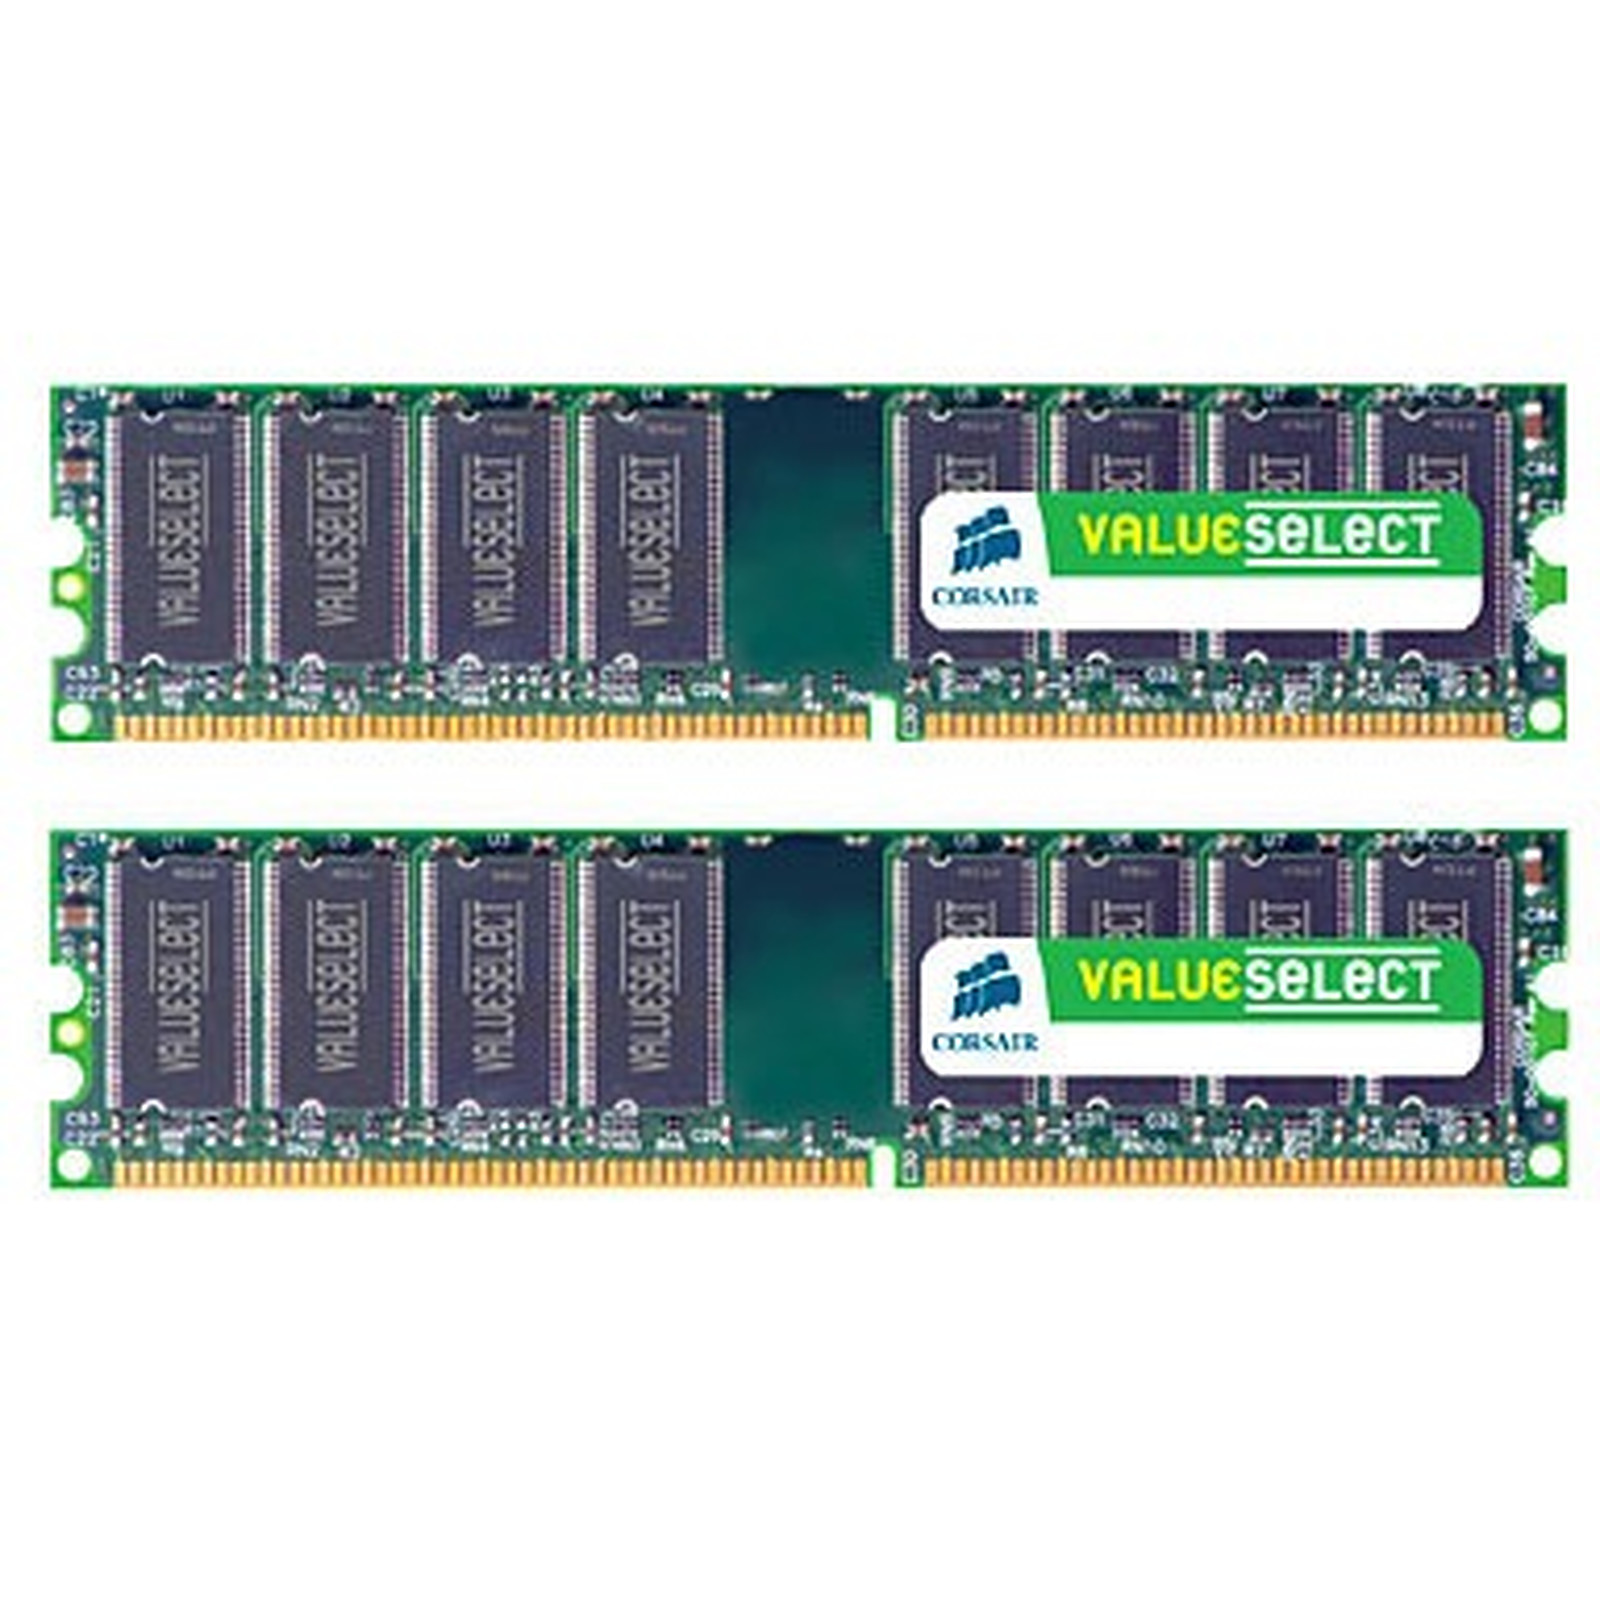 Corsair Value Select 2 Go (2x 1 Go) DDR2 533 MHz CL4